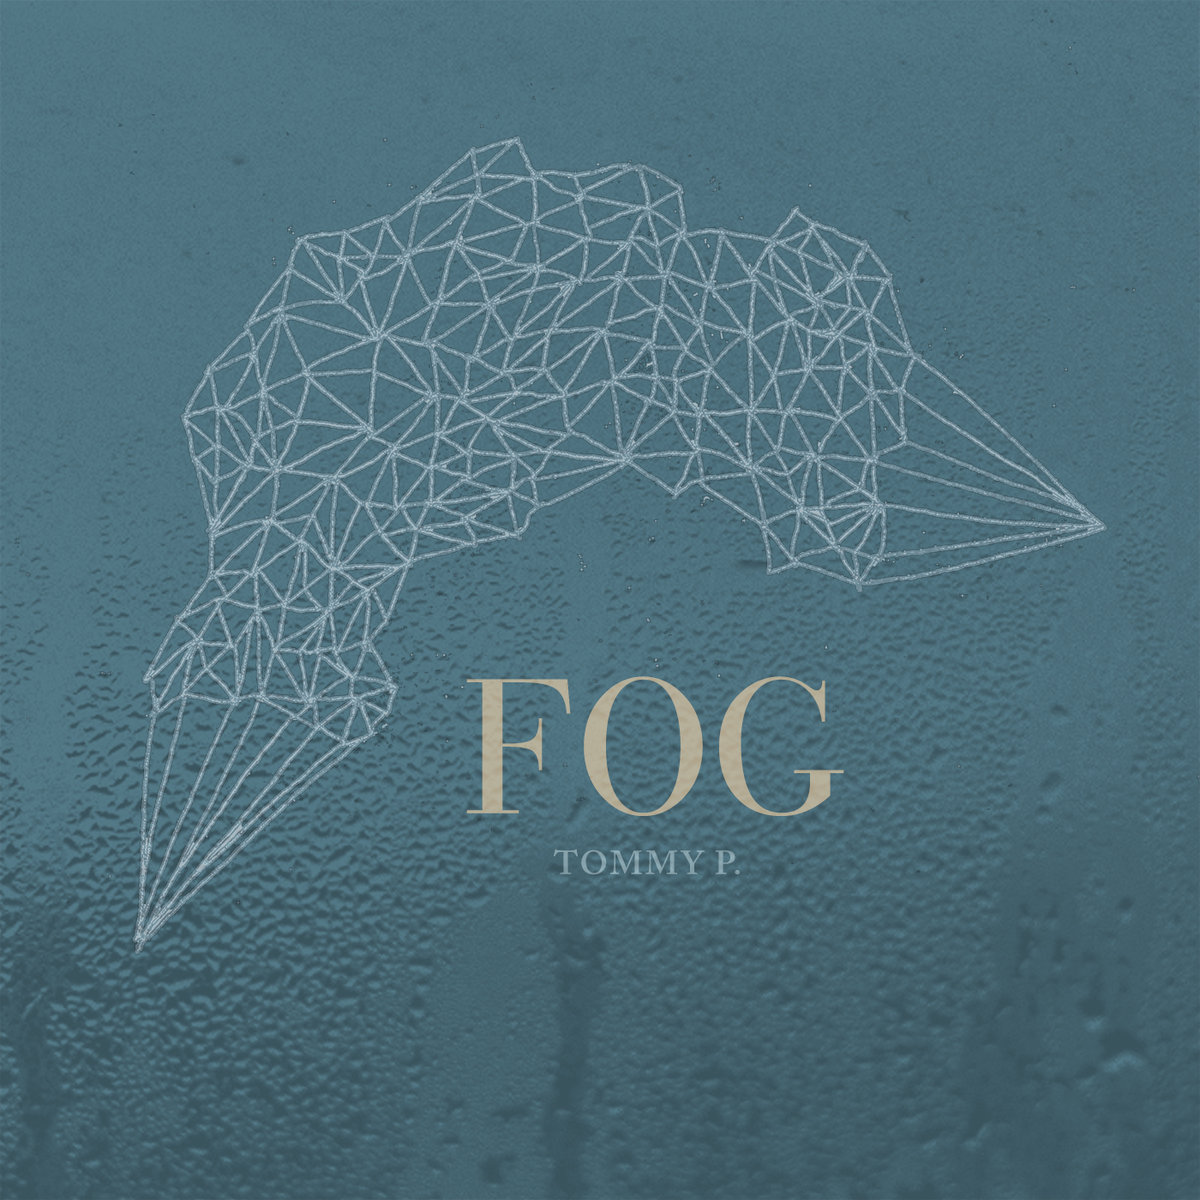 Tommy P. - Mothsmoke @ 'Fog' album (11th ave records, 11thaverecords 11th avenue)